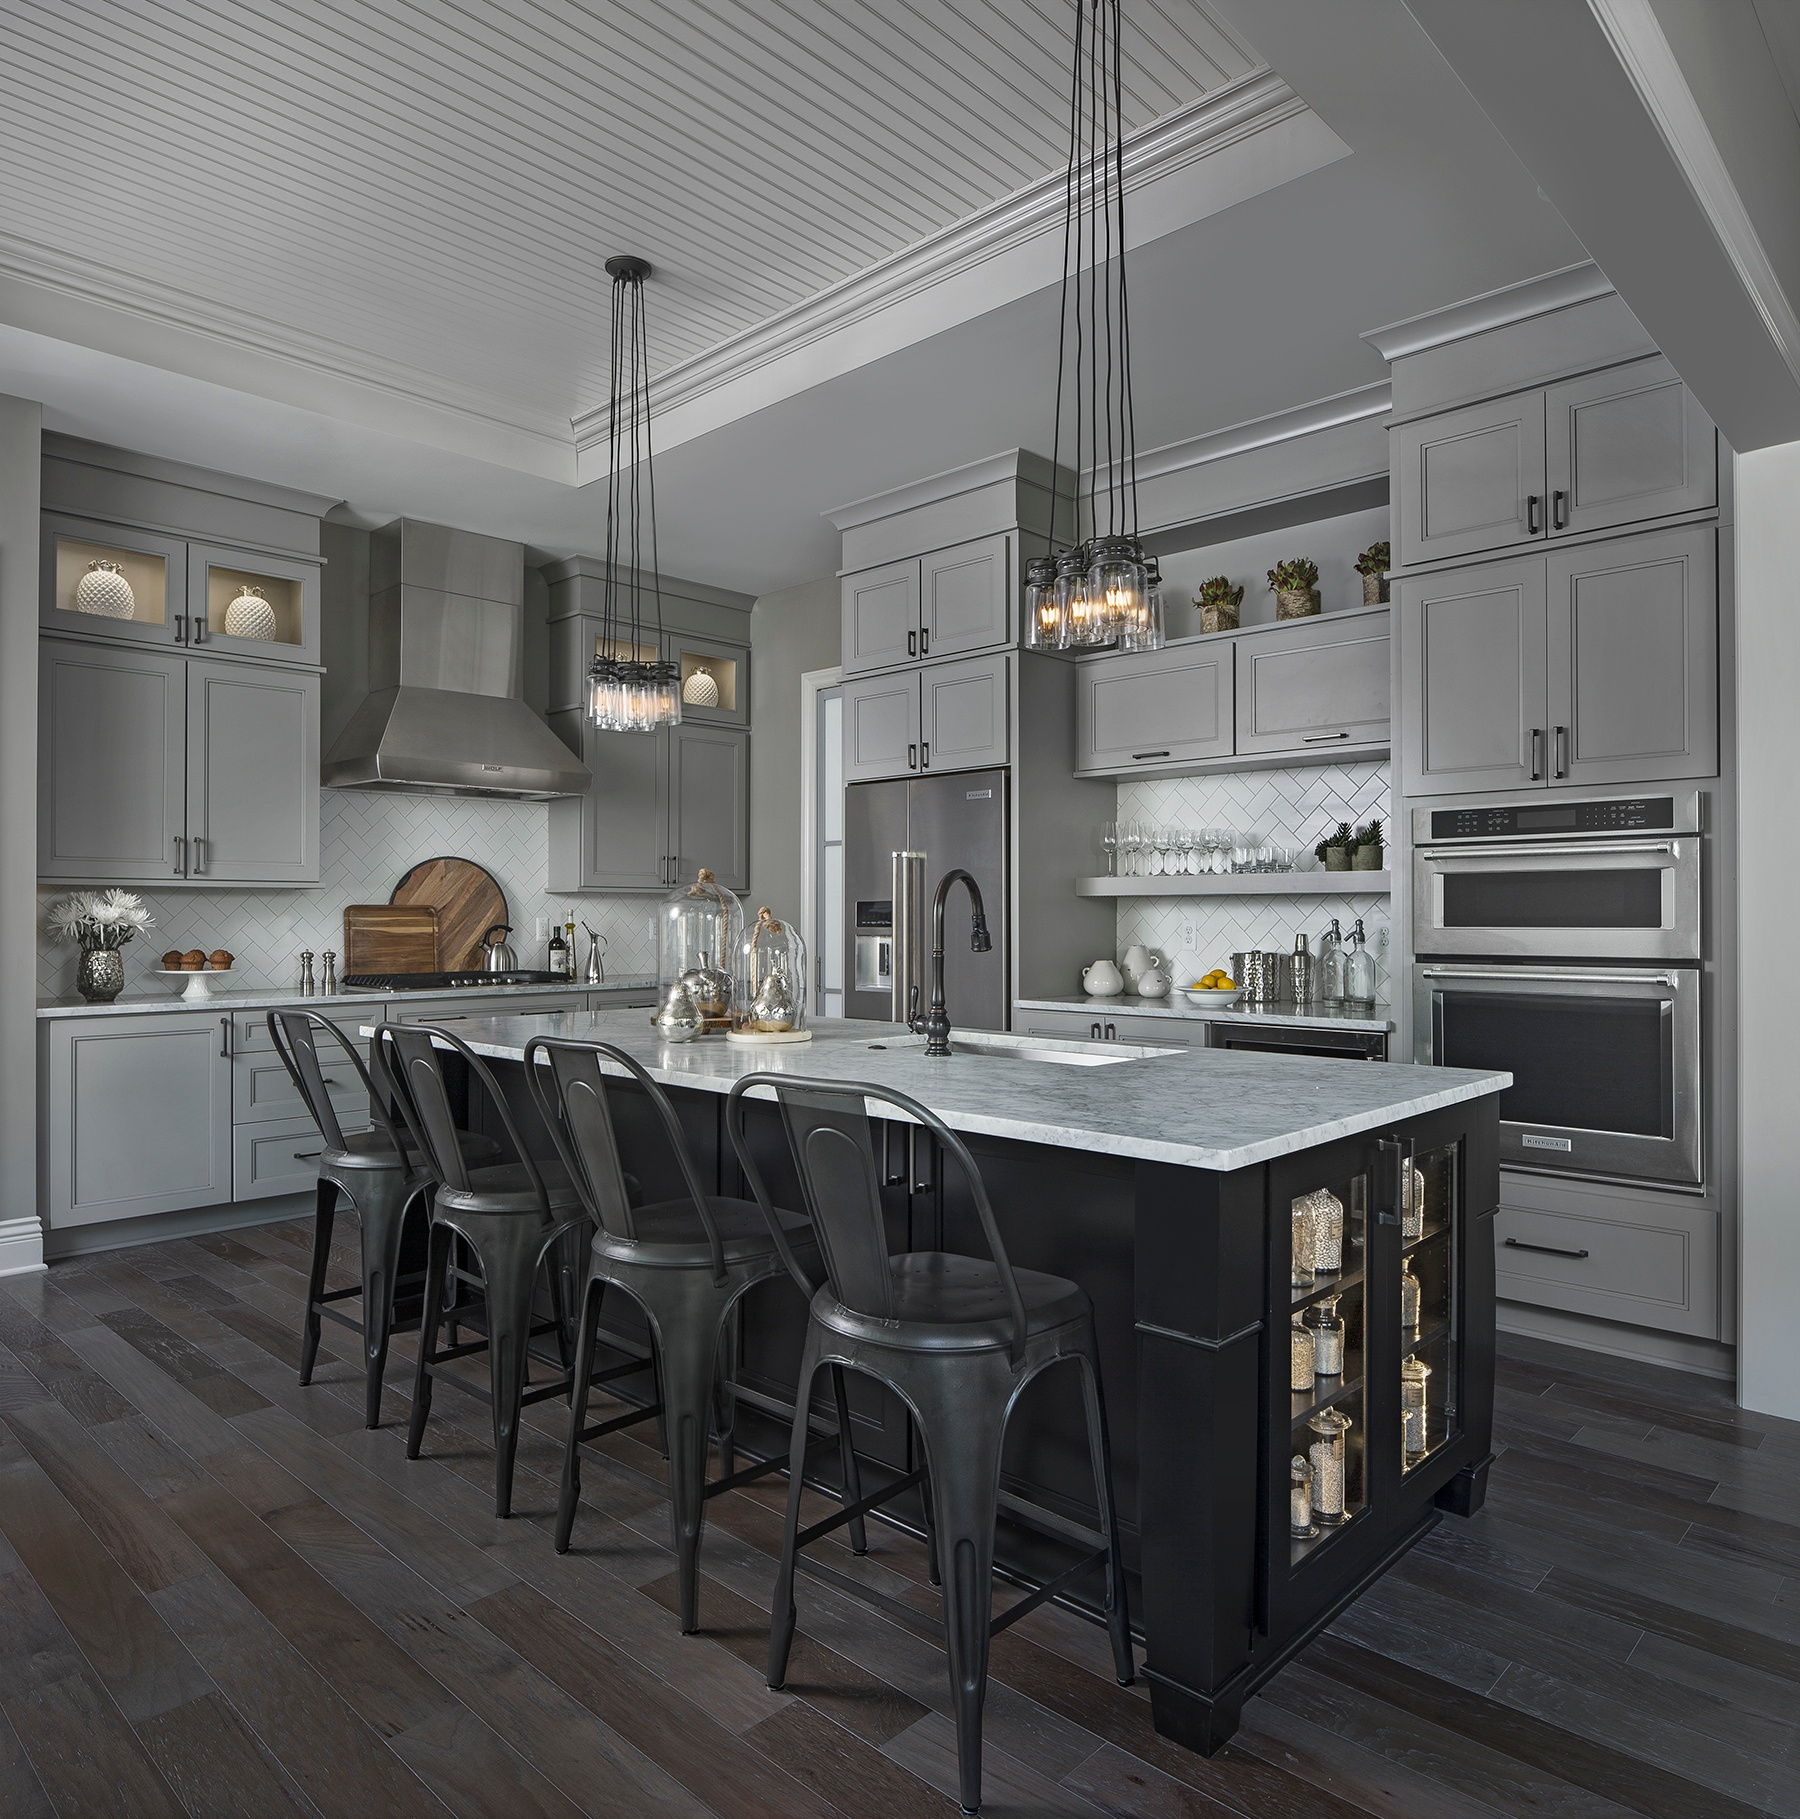 U201cWow Factorsu201d And Calm Tones Are Infused Throughout The Lancaster Model By  Arteva Homes That Is Featured In The 2016 Homearama® Event At Christenbury  Creek ...